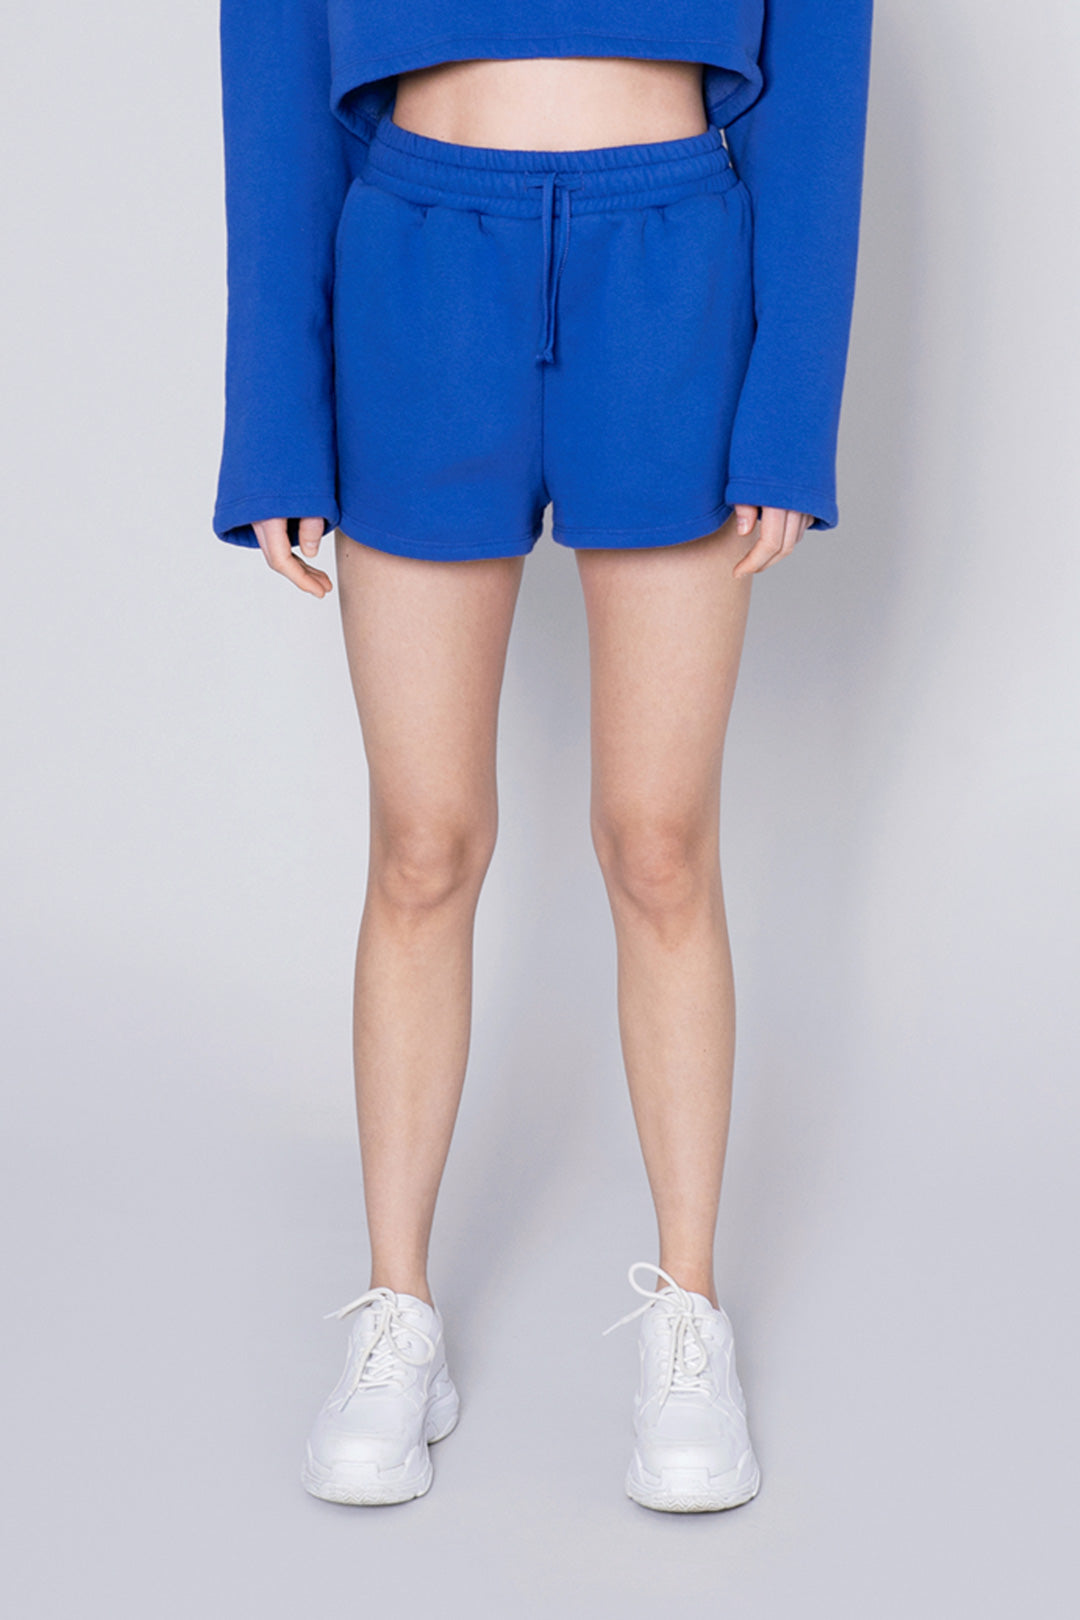 SHORTS 01 - deep blue